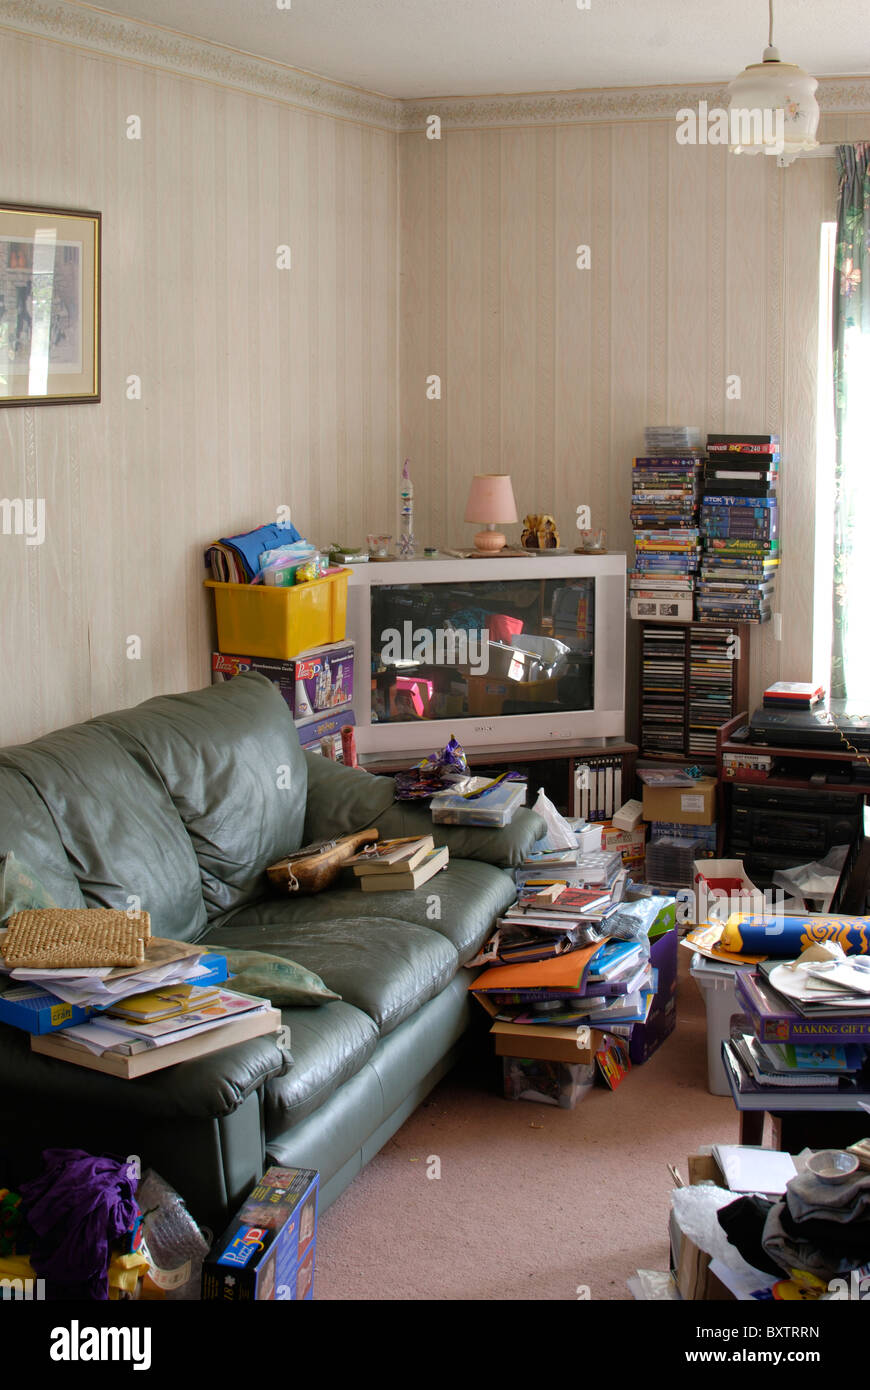 Images Stock Rubbish Very Messy And Untidy Cluttered Lounge Room With Books